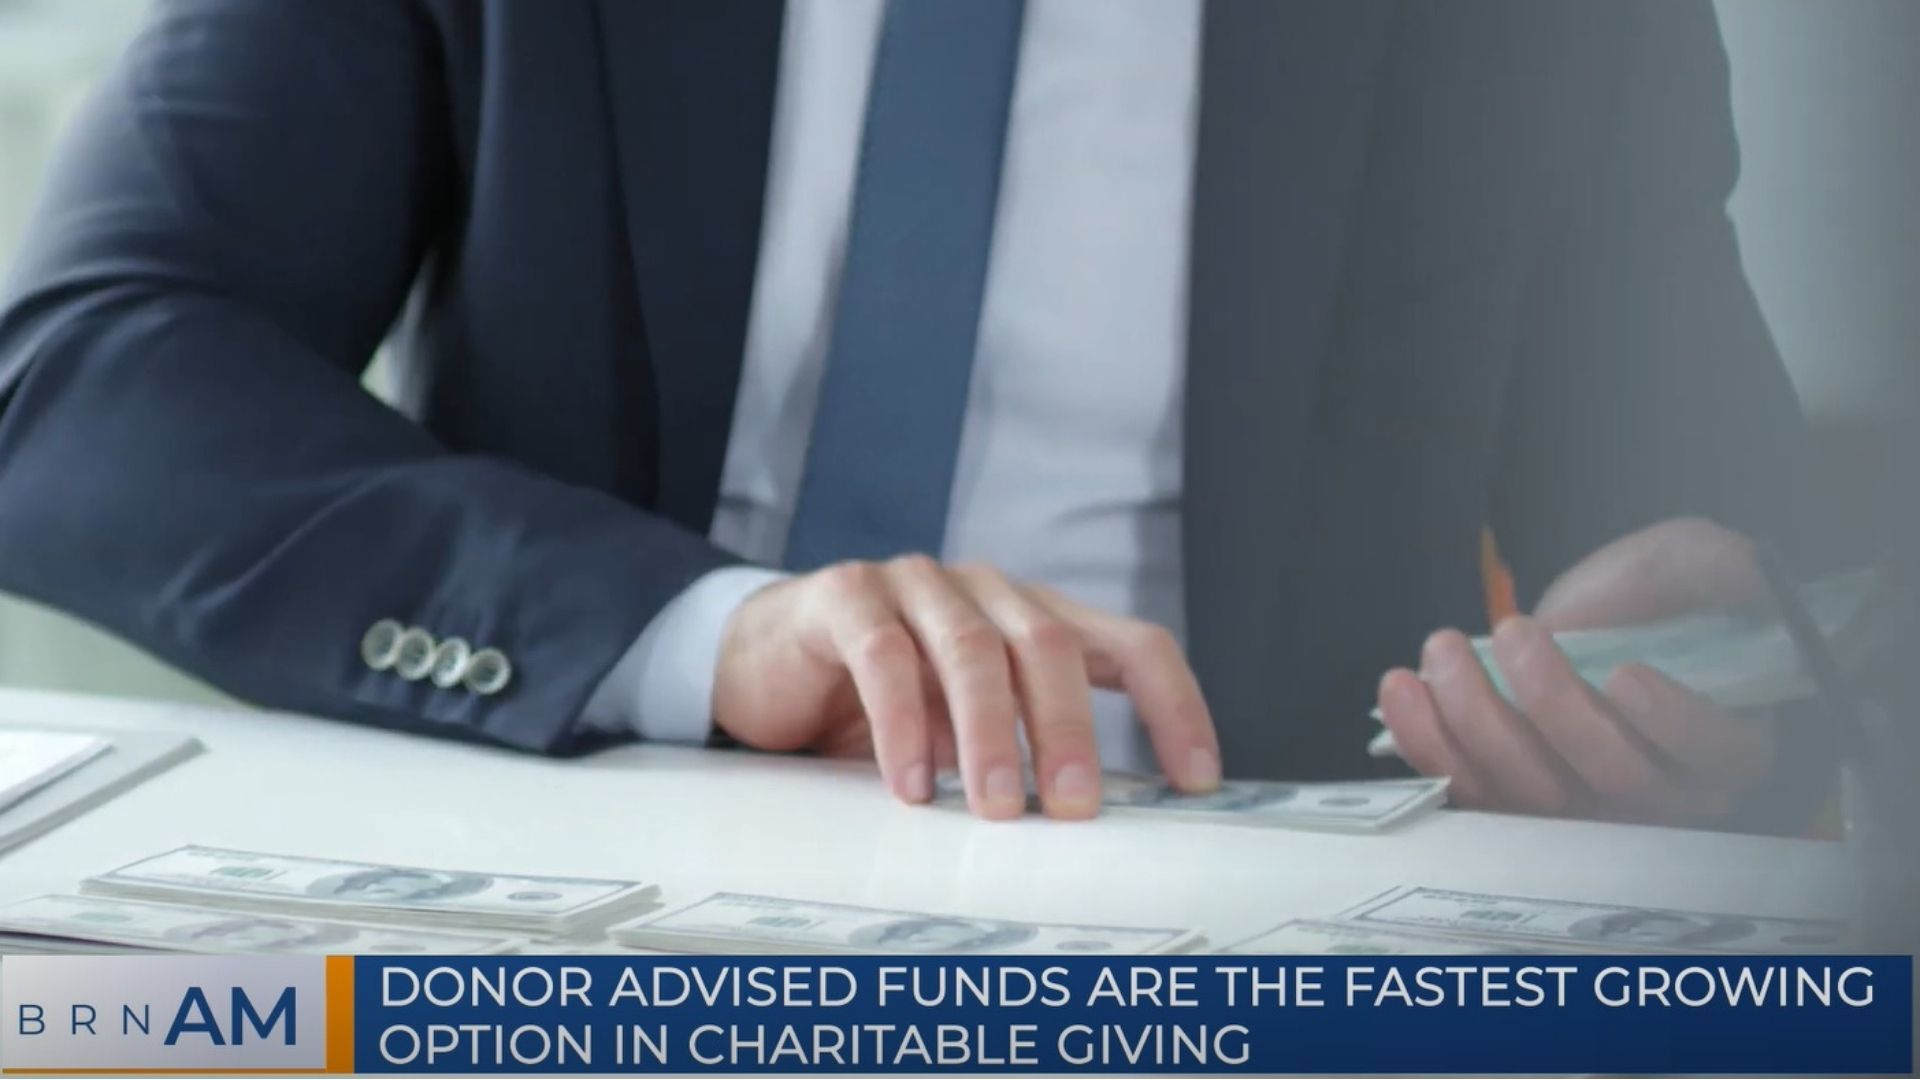 BRN AM   Donor Advised Funds are the fastest growing option in charitable giving